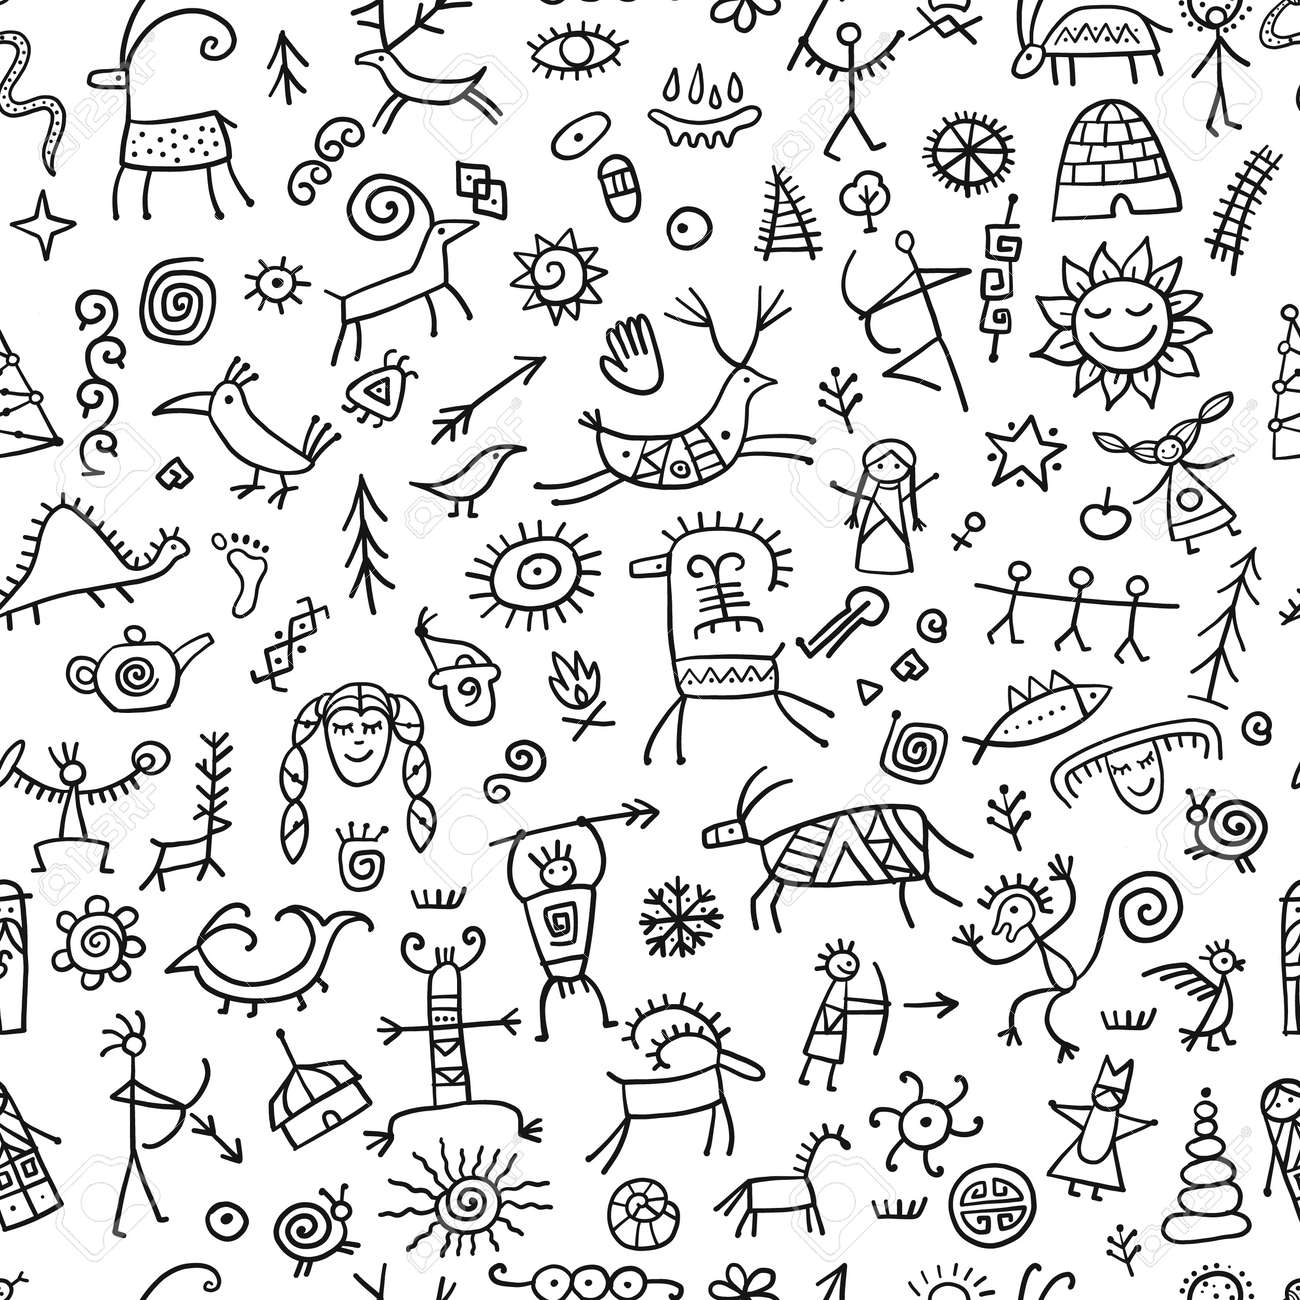 Rock paintings background, seamless pattern for your design - 169416666